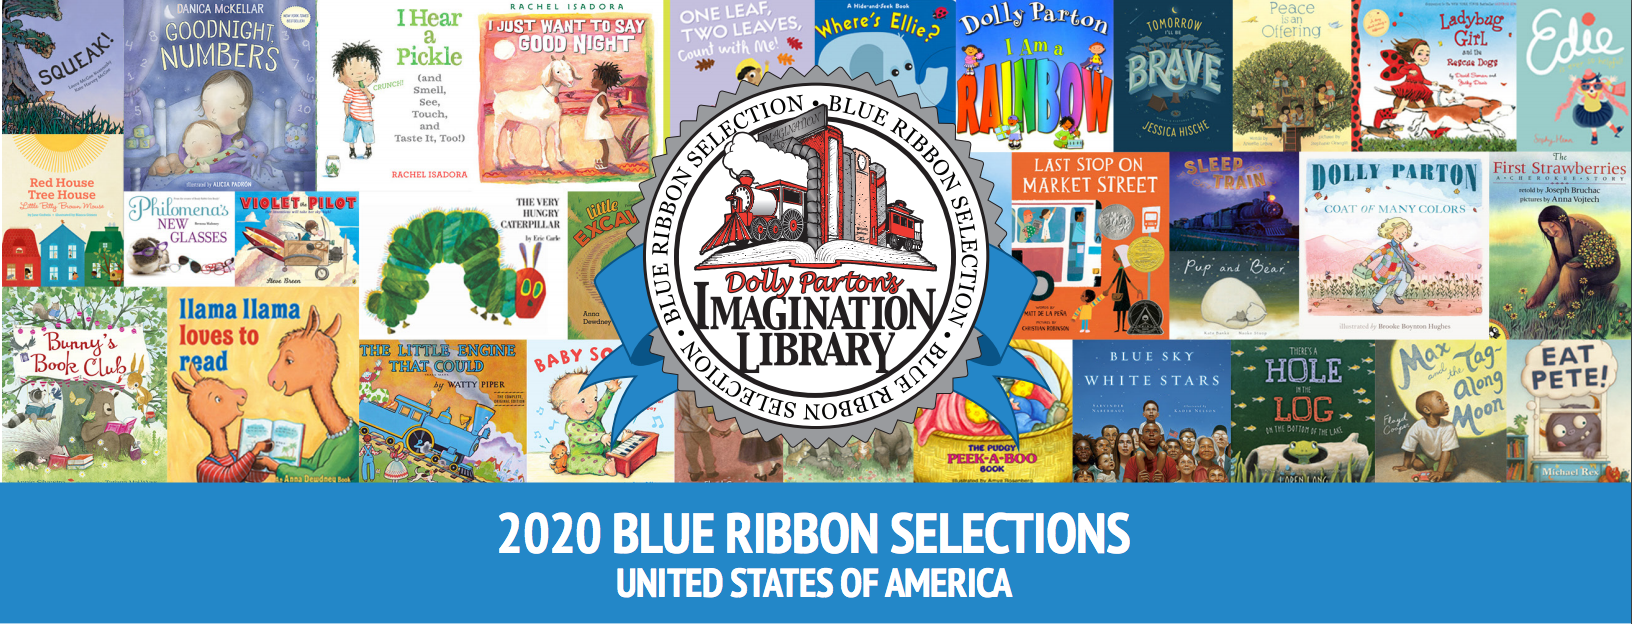 The 2020 Book Selections